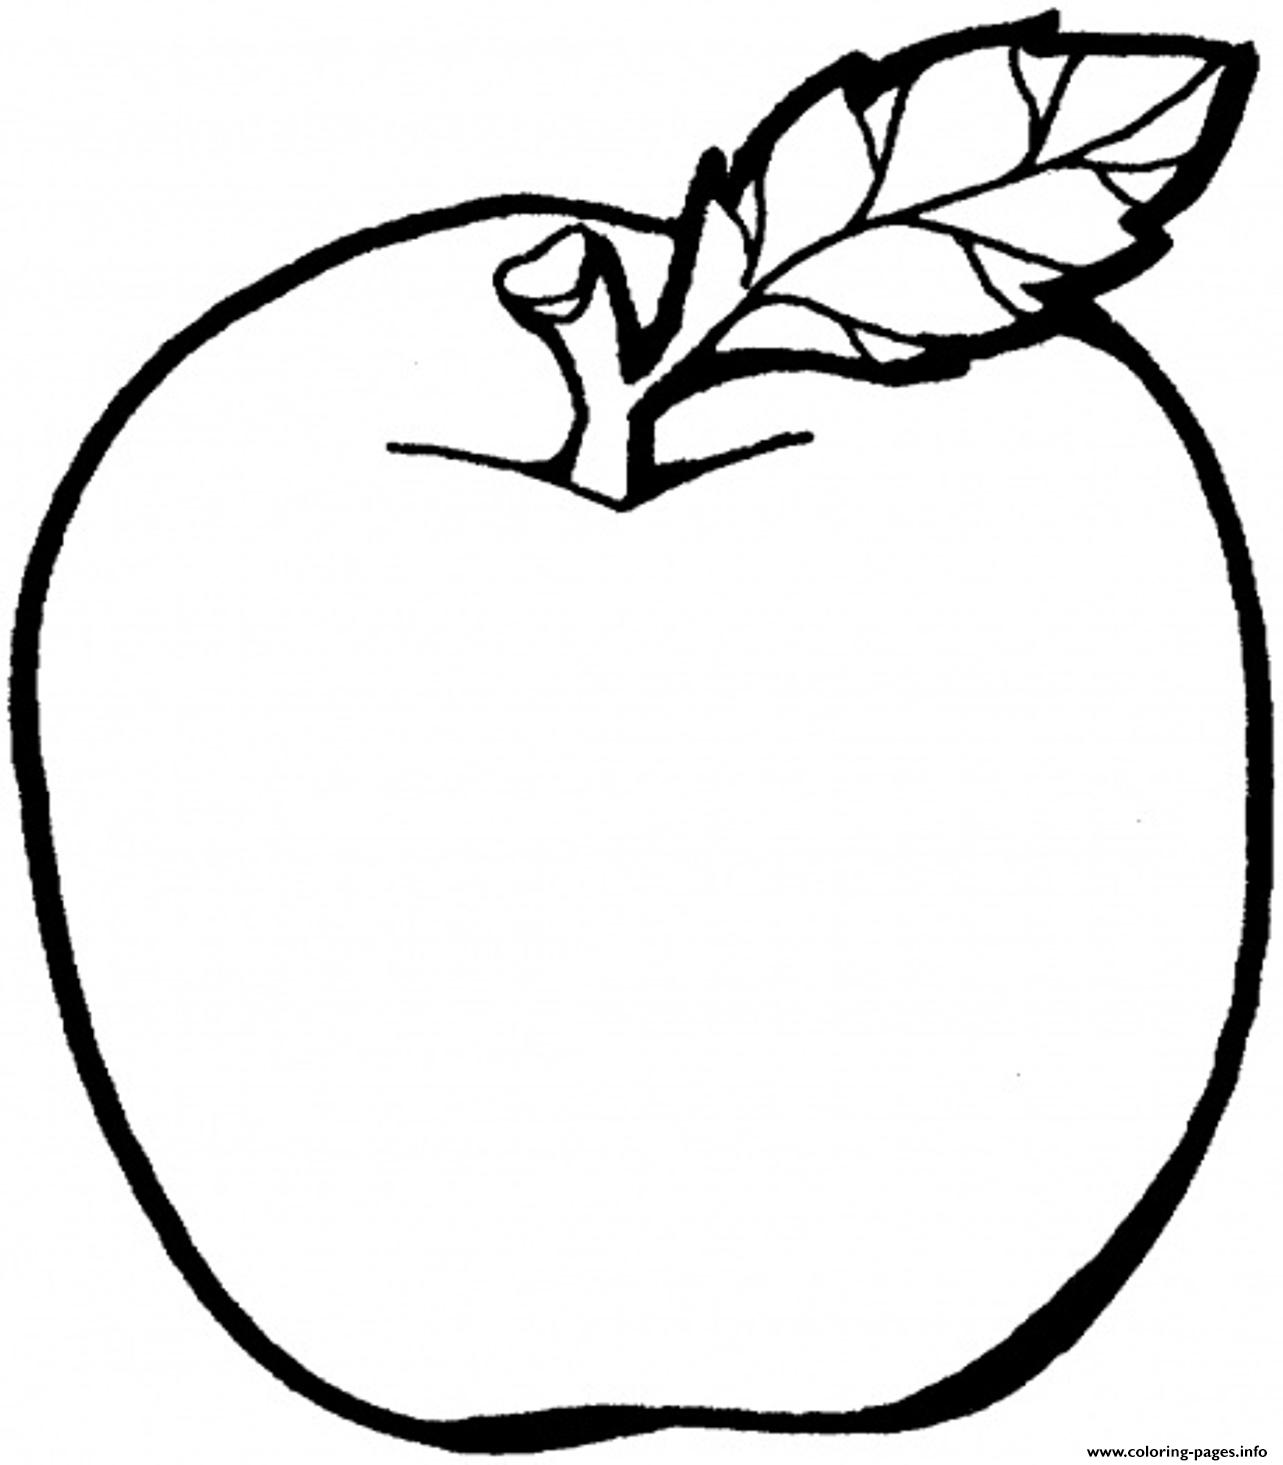 coloring pages fruits - apple fruit s for kids14b4 coloring pages printable